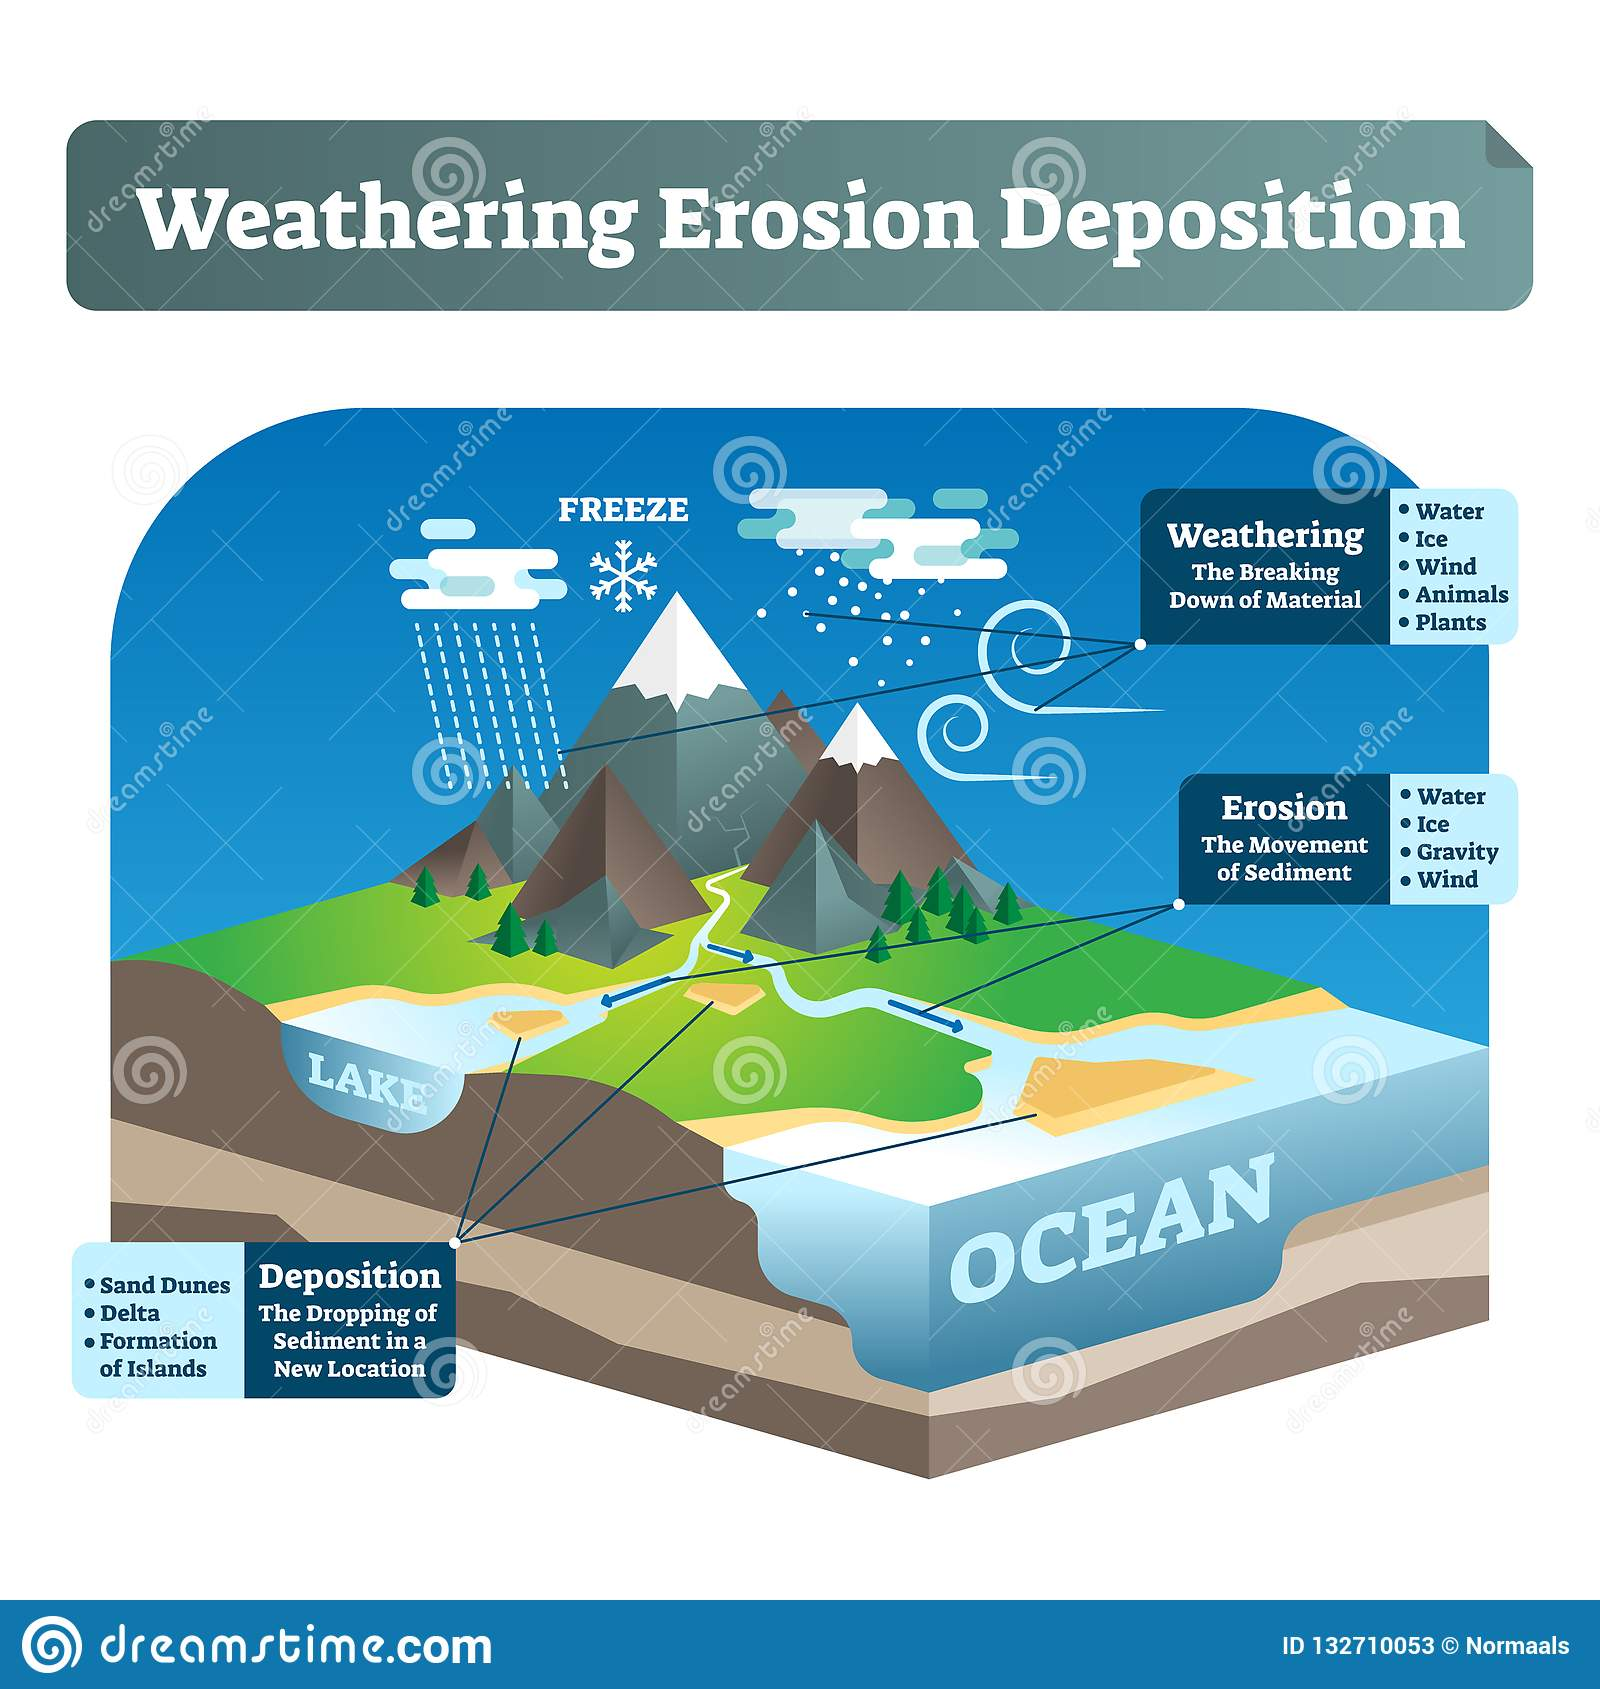 Simple Labeled Weathering Erosion Deposition Or Wed Vector